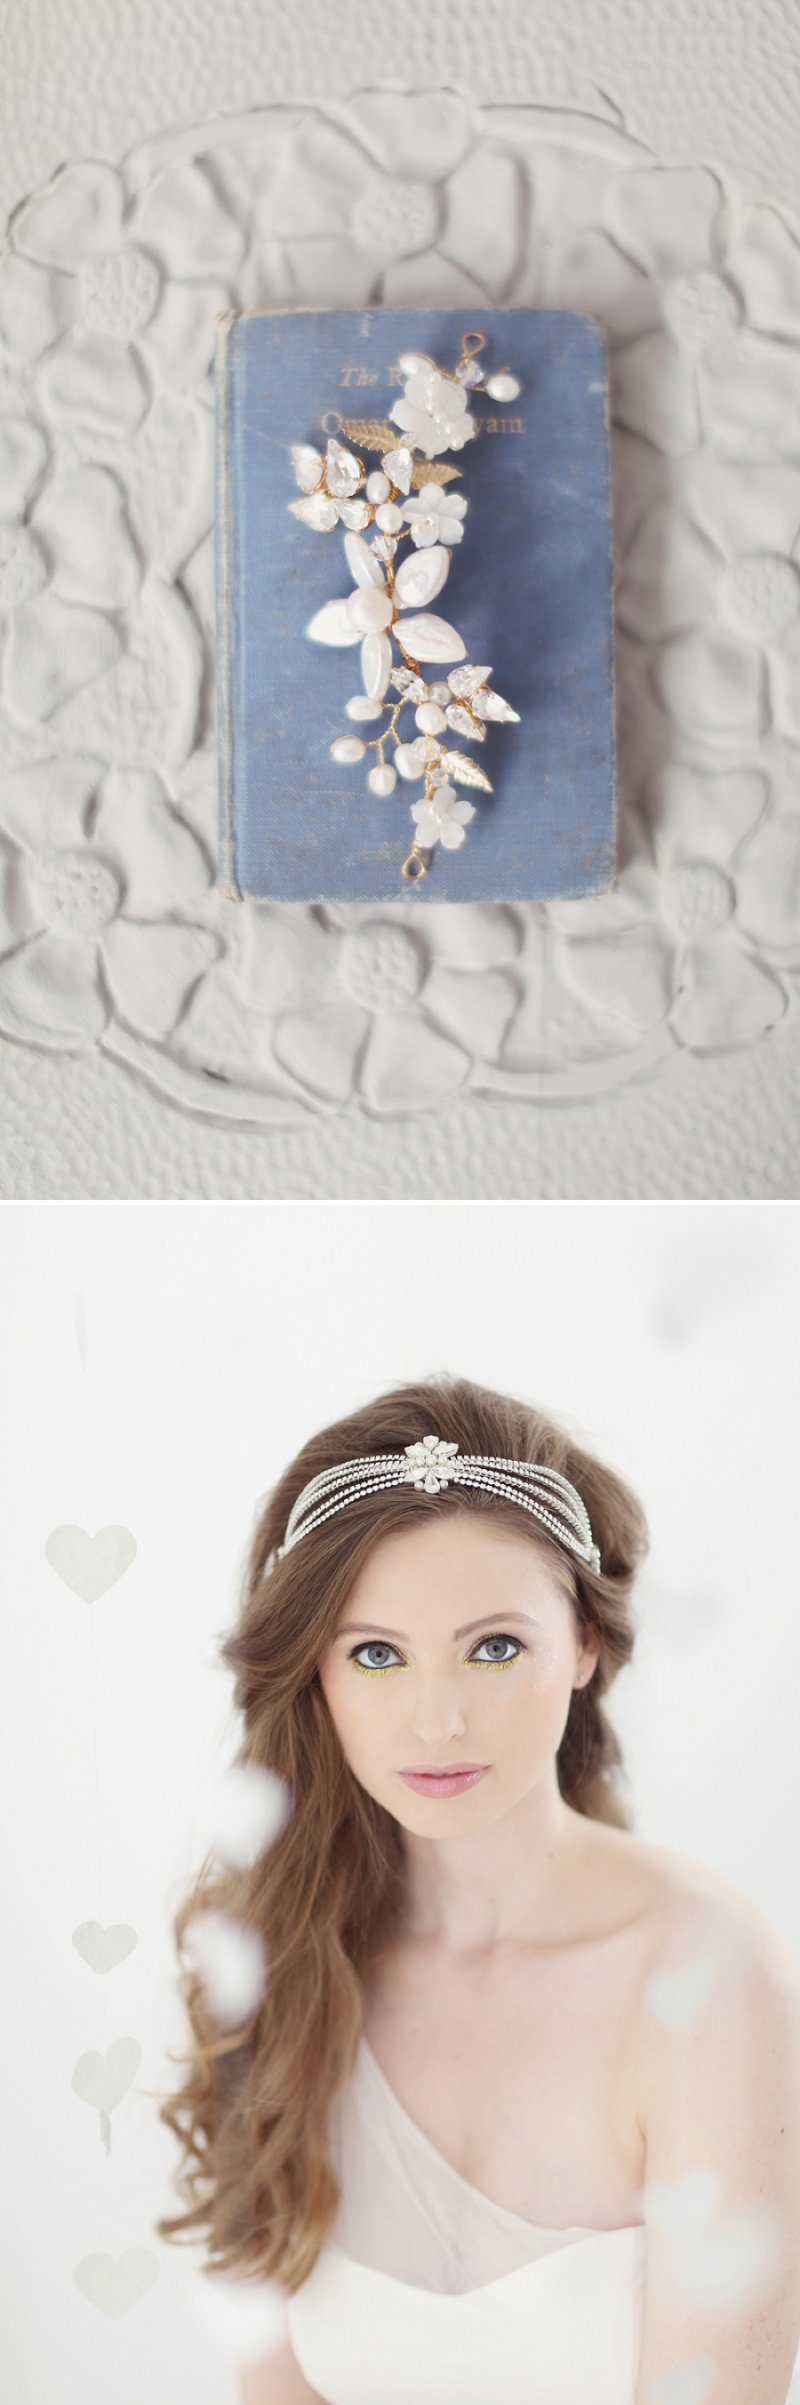 Pastel Valentines Day Inspired Bridal Shoot Featuring Hair Accessories From Corrine Smith Design With Flowers From I Heart Flowers And Images By Eva Sanders Photography 10